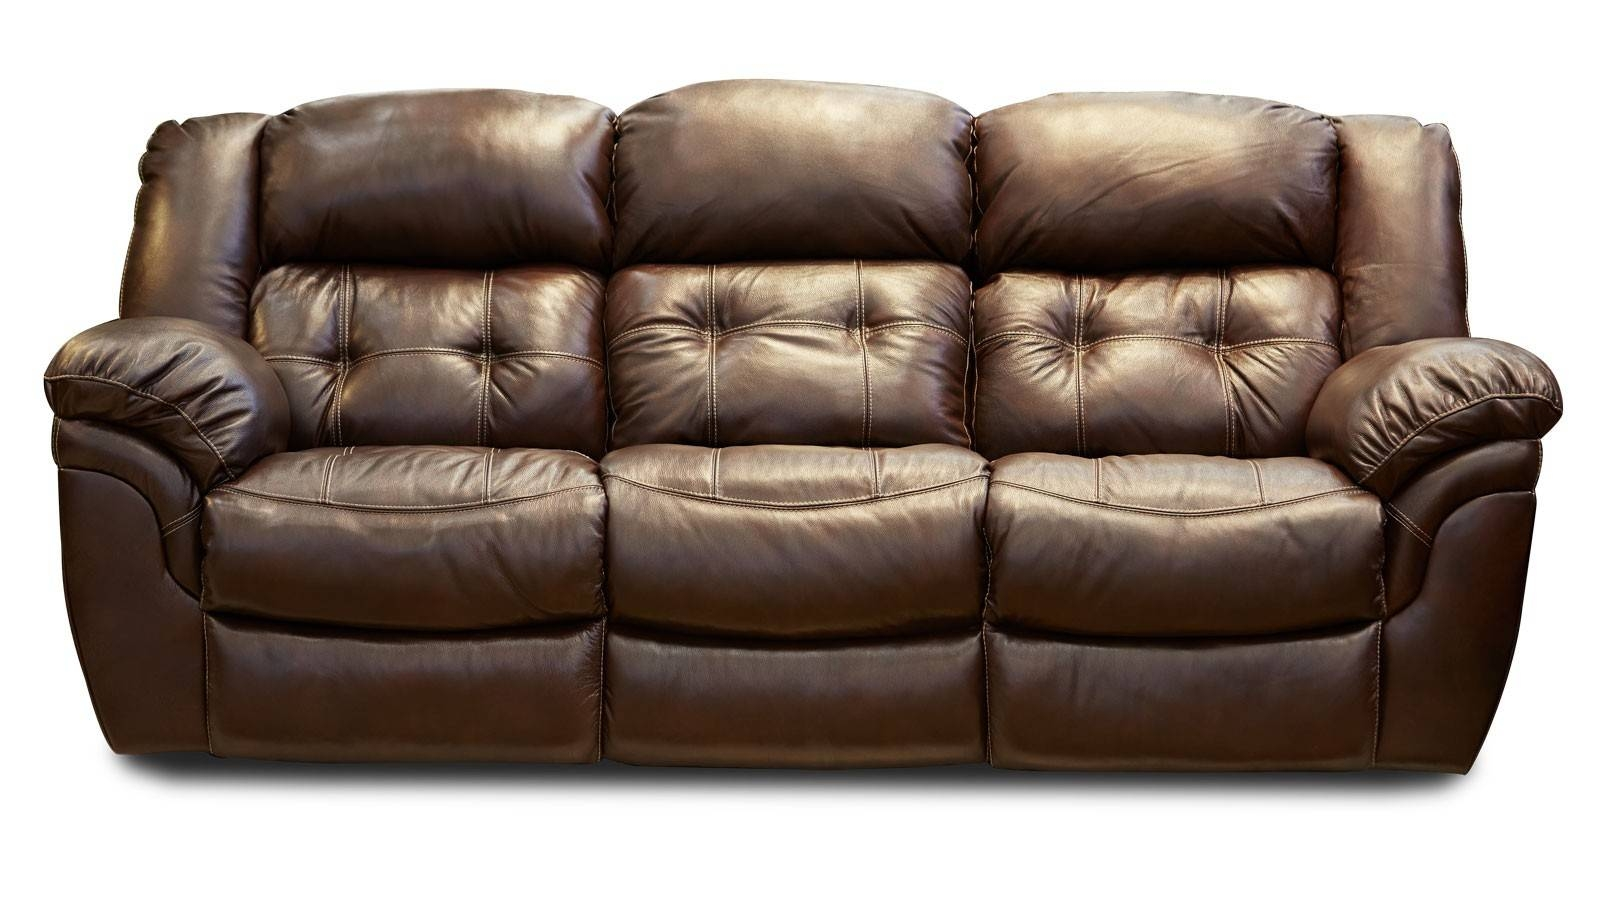 Cheyenne Whisky Reclining Sofa | Gallery Furniture in Recliner Sofa Chairs (Image 9 of 30)